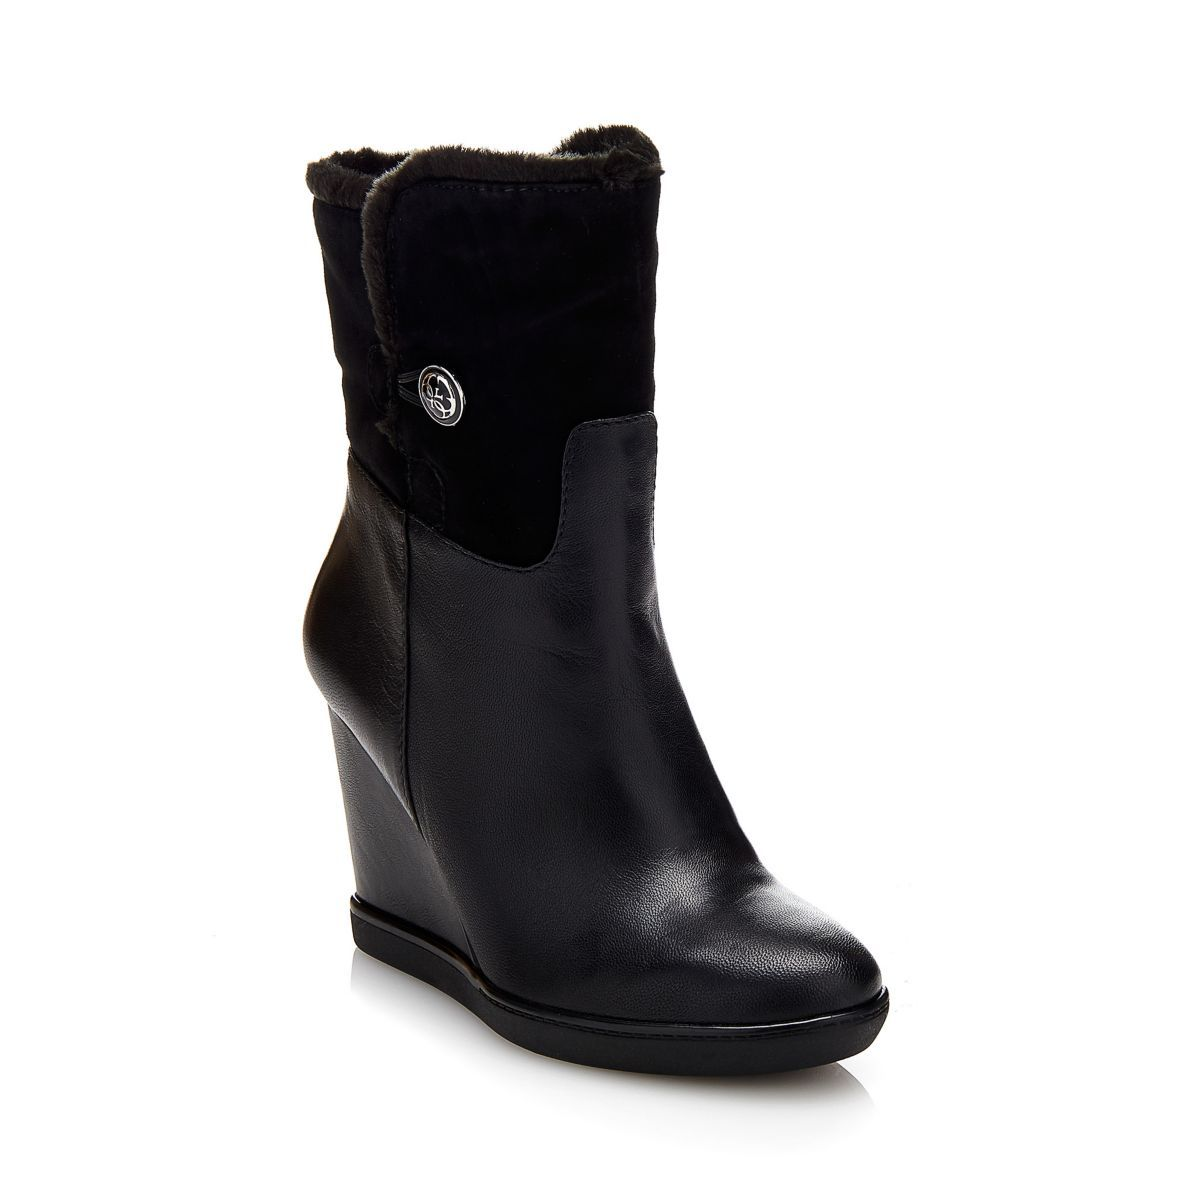 Chaussures Chaussures Femme Boots, bottines